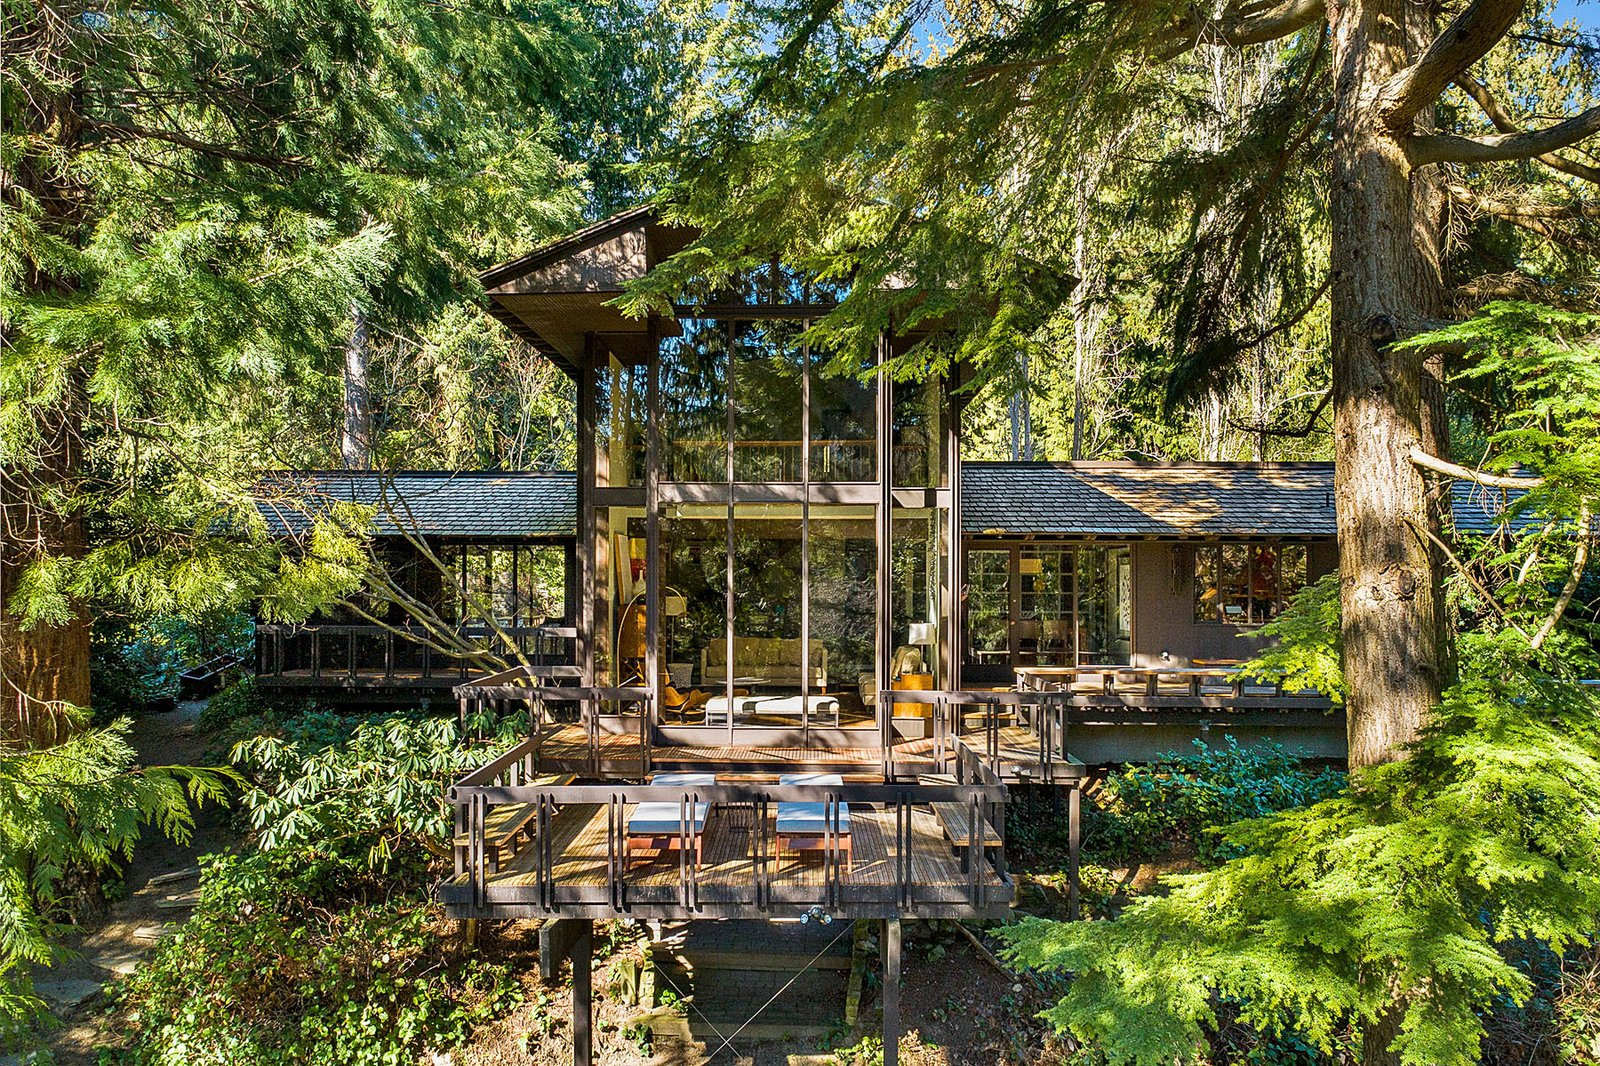 A Midcentury Home Nestled in a Pacific Northwest Forest Asks $1.5M